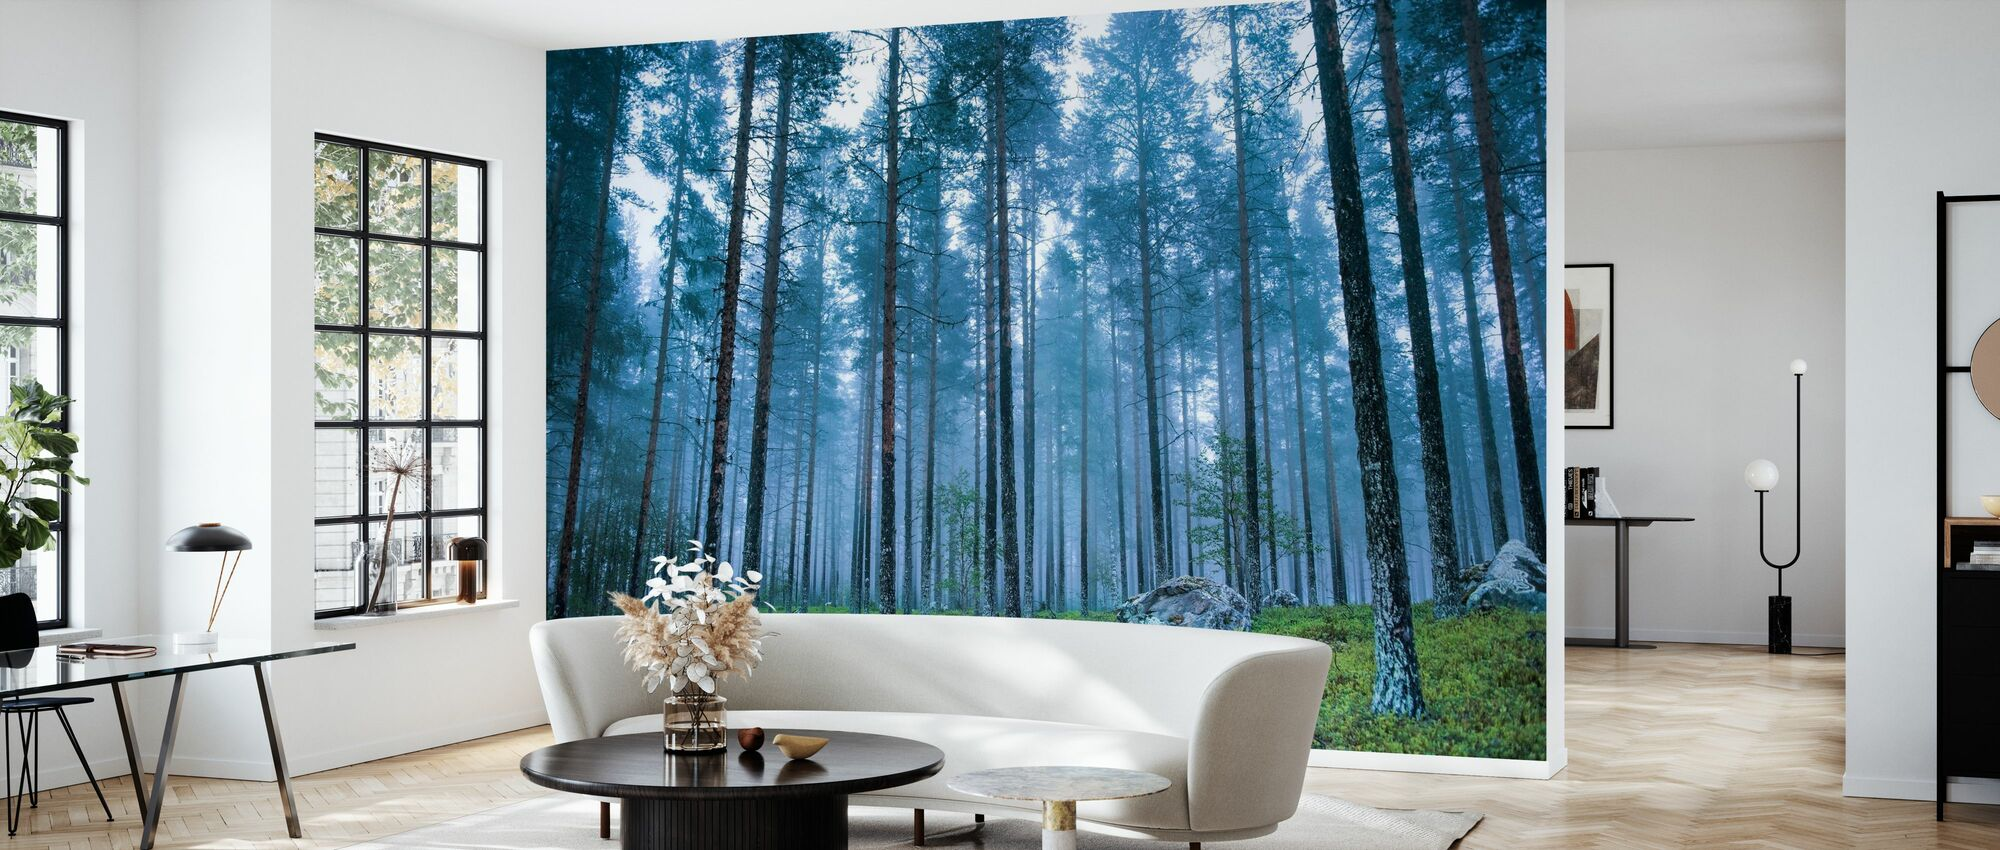 Blue Forest - Wallpaper - Living Room